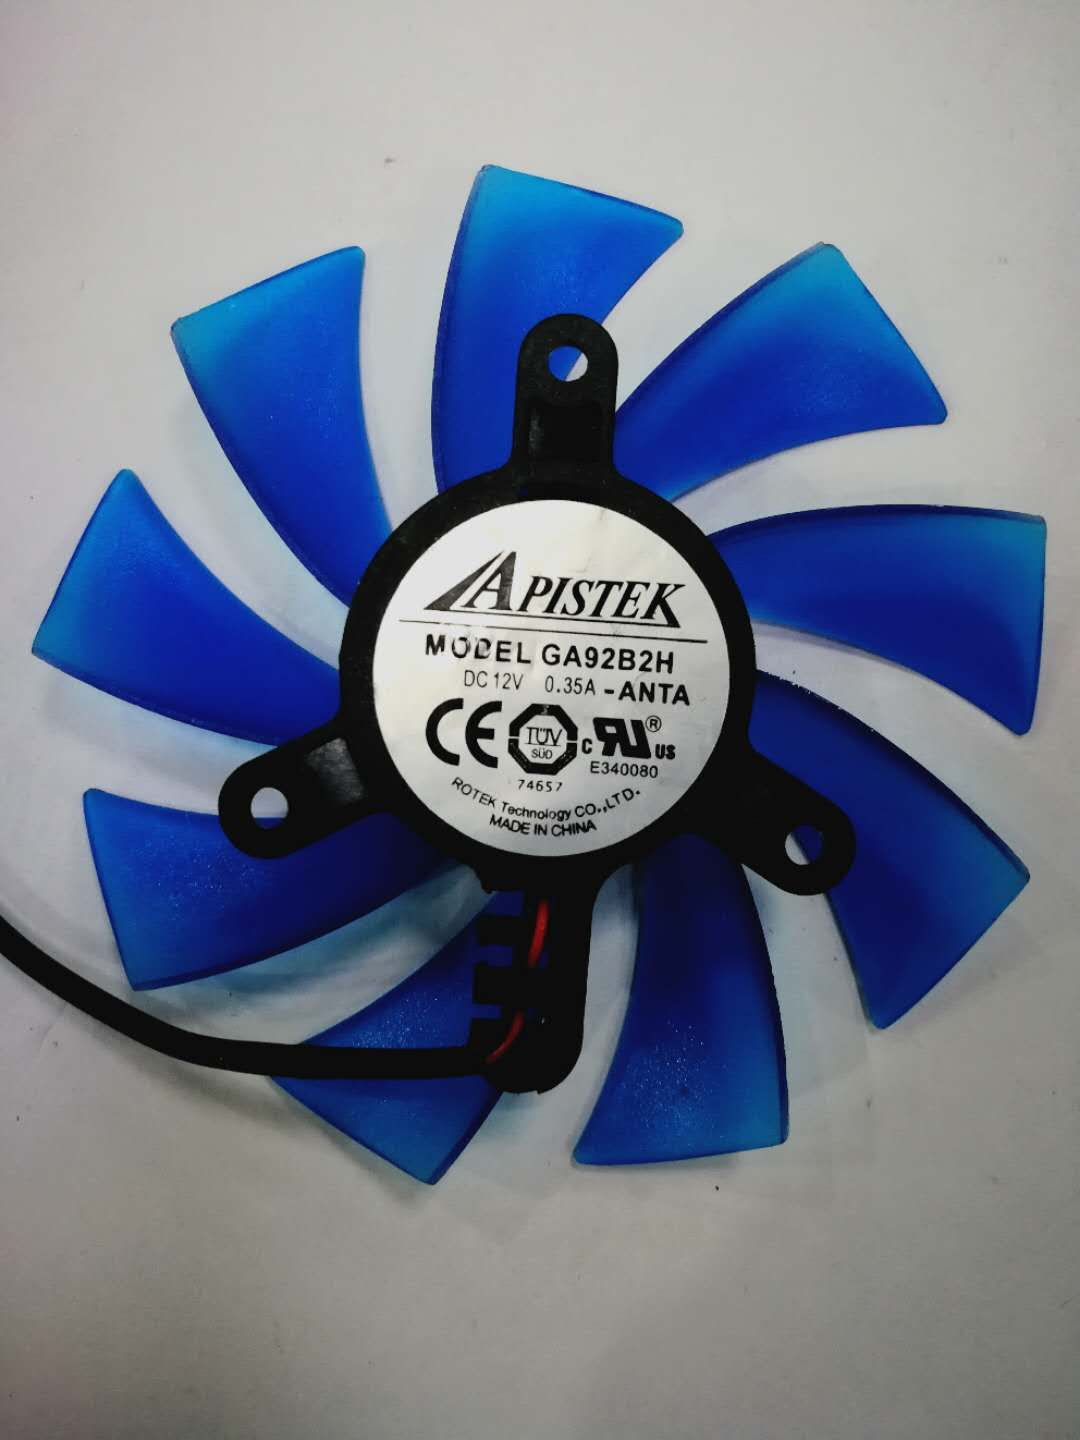 APISTEK GA92B2H ANTA DC12V 0.35A 2Pin 2Wire Video Graphics Card Cooling Fan